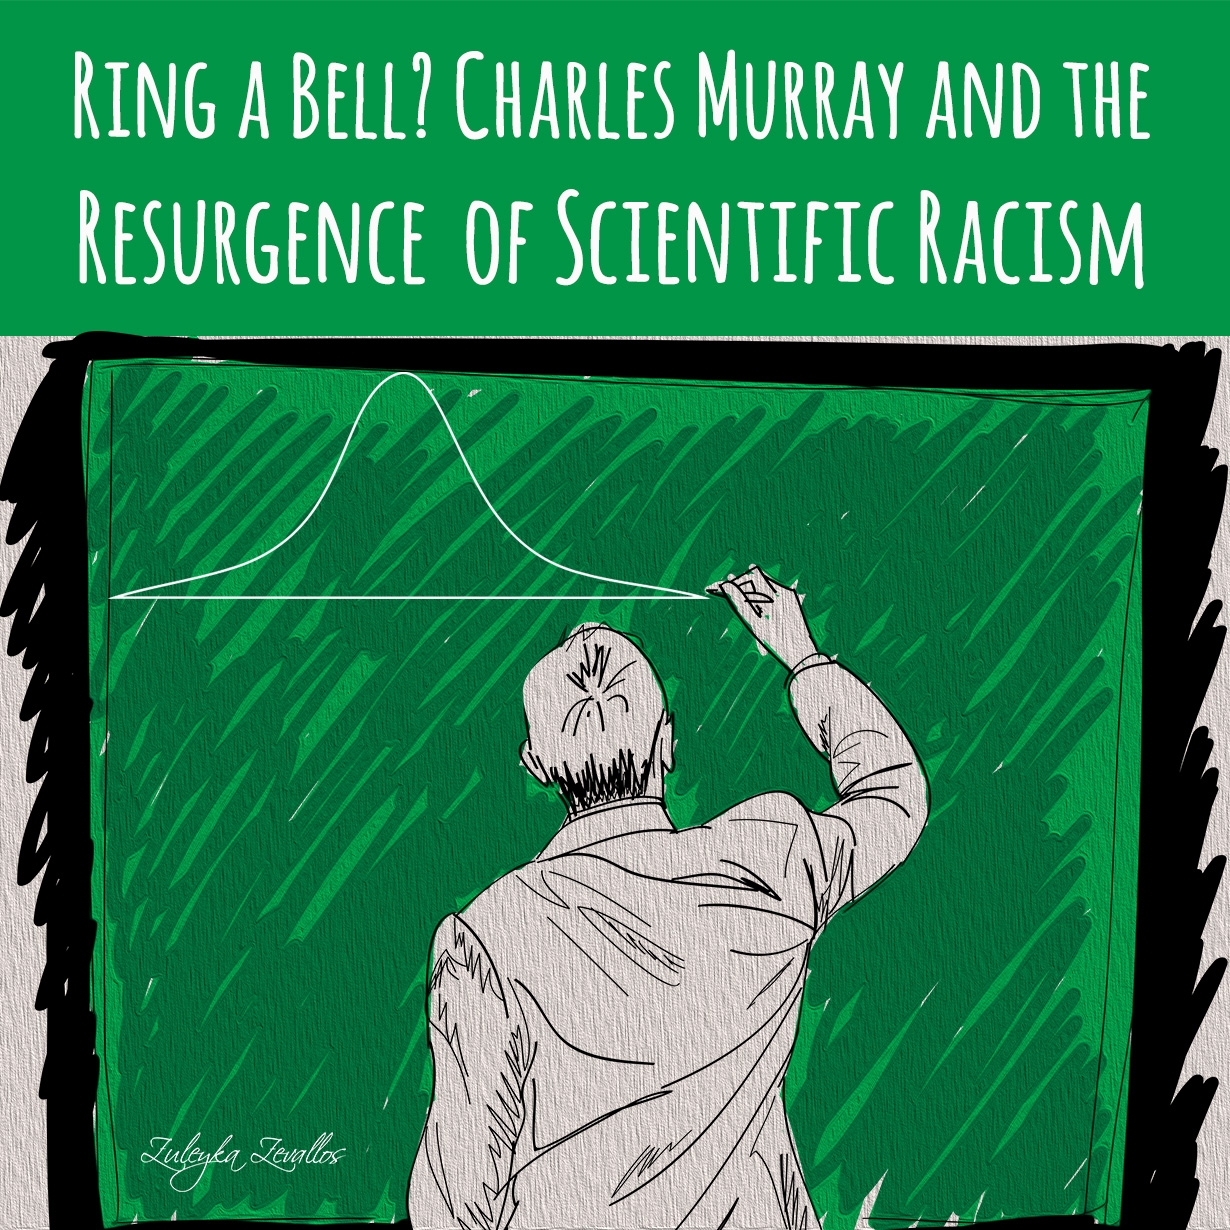 Ring a Bell? Charles Murray and the Resurgence of Scientific Racism